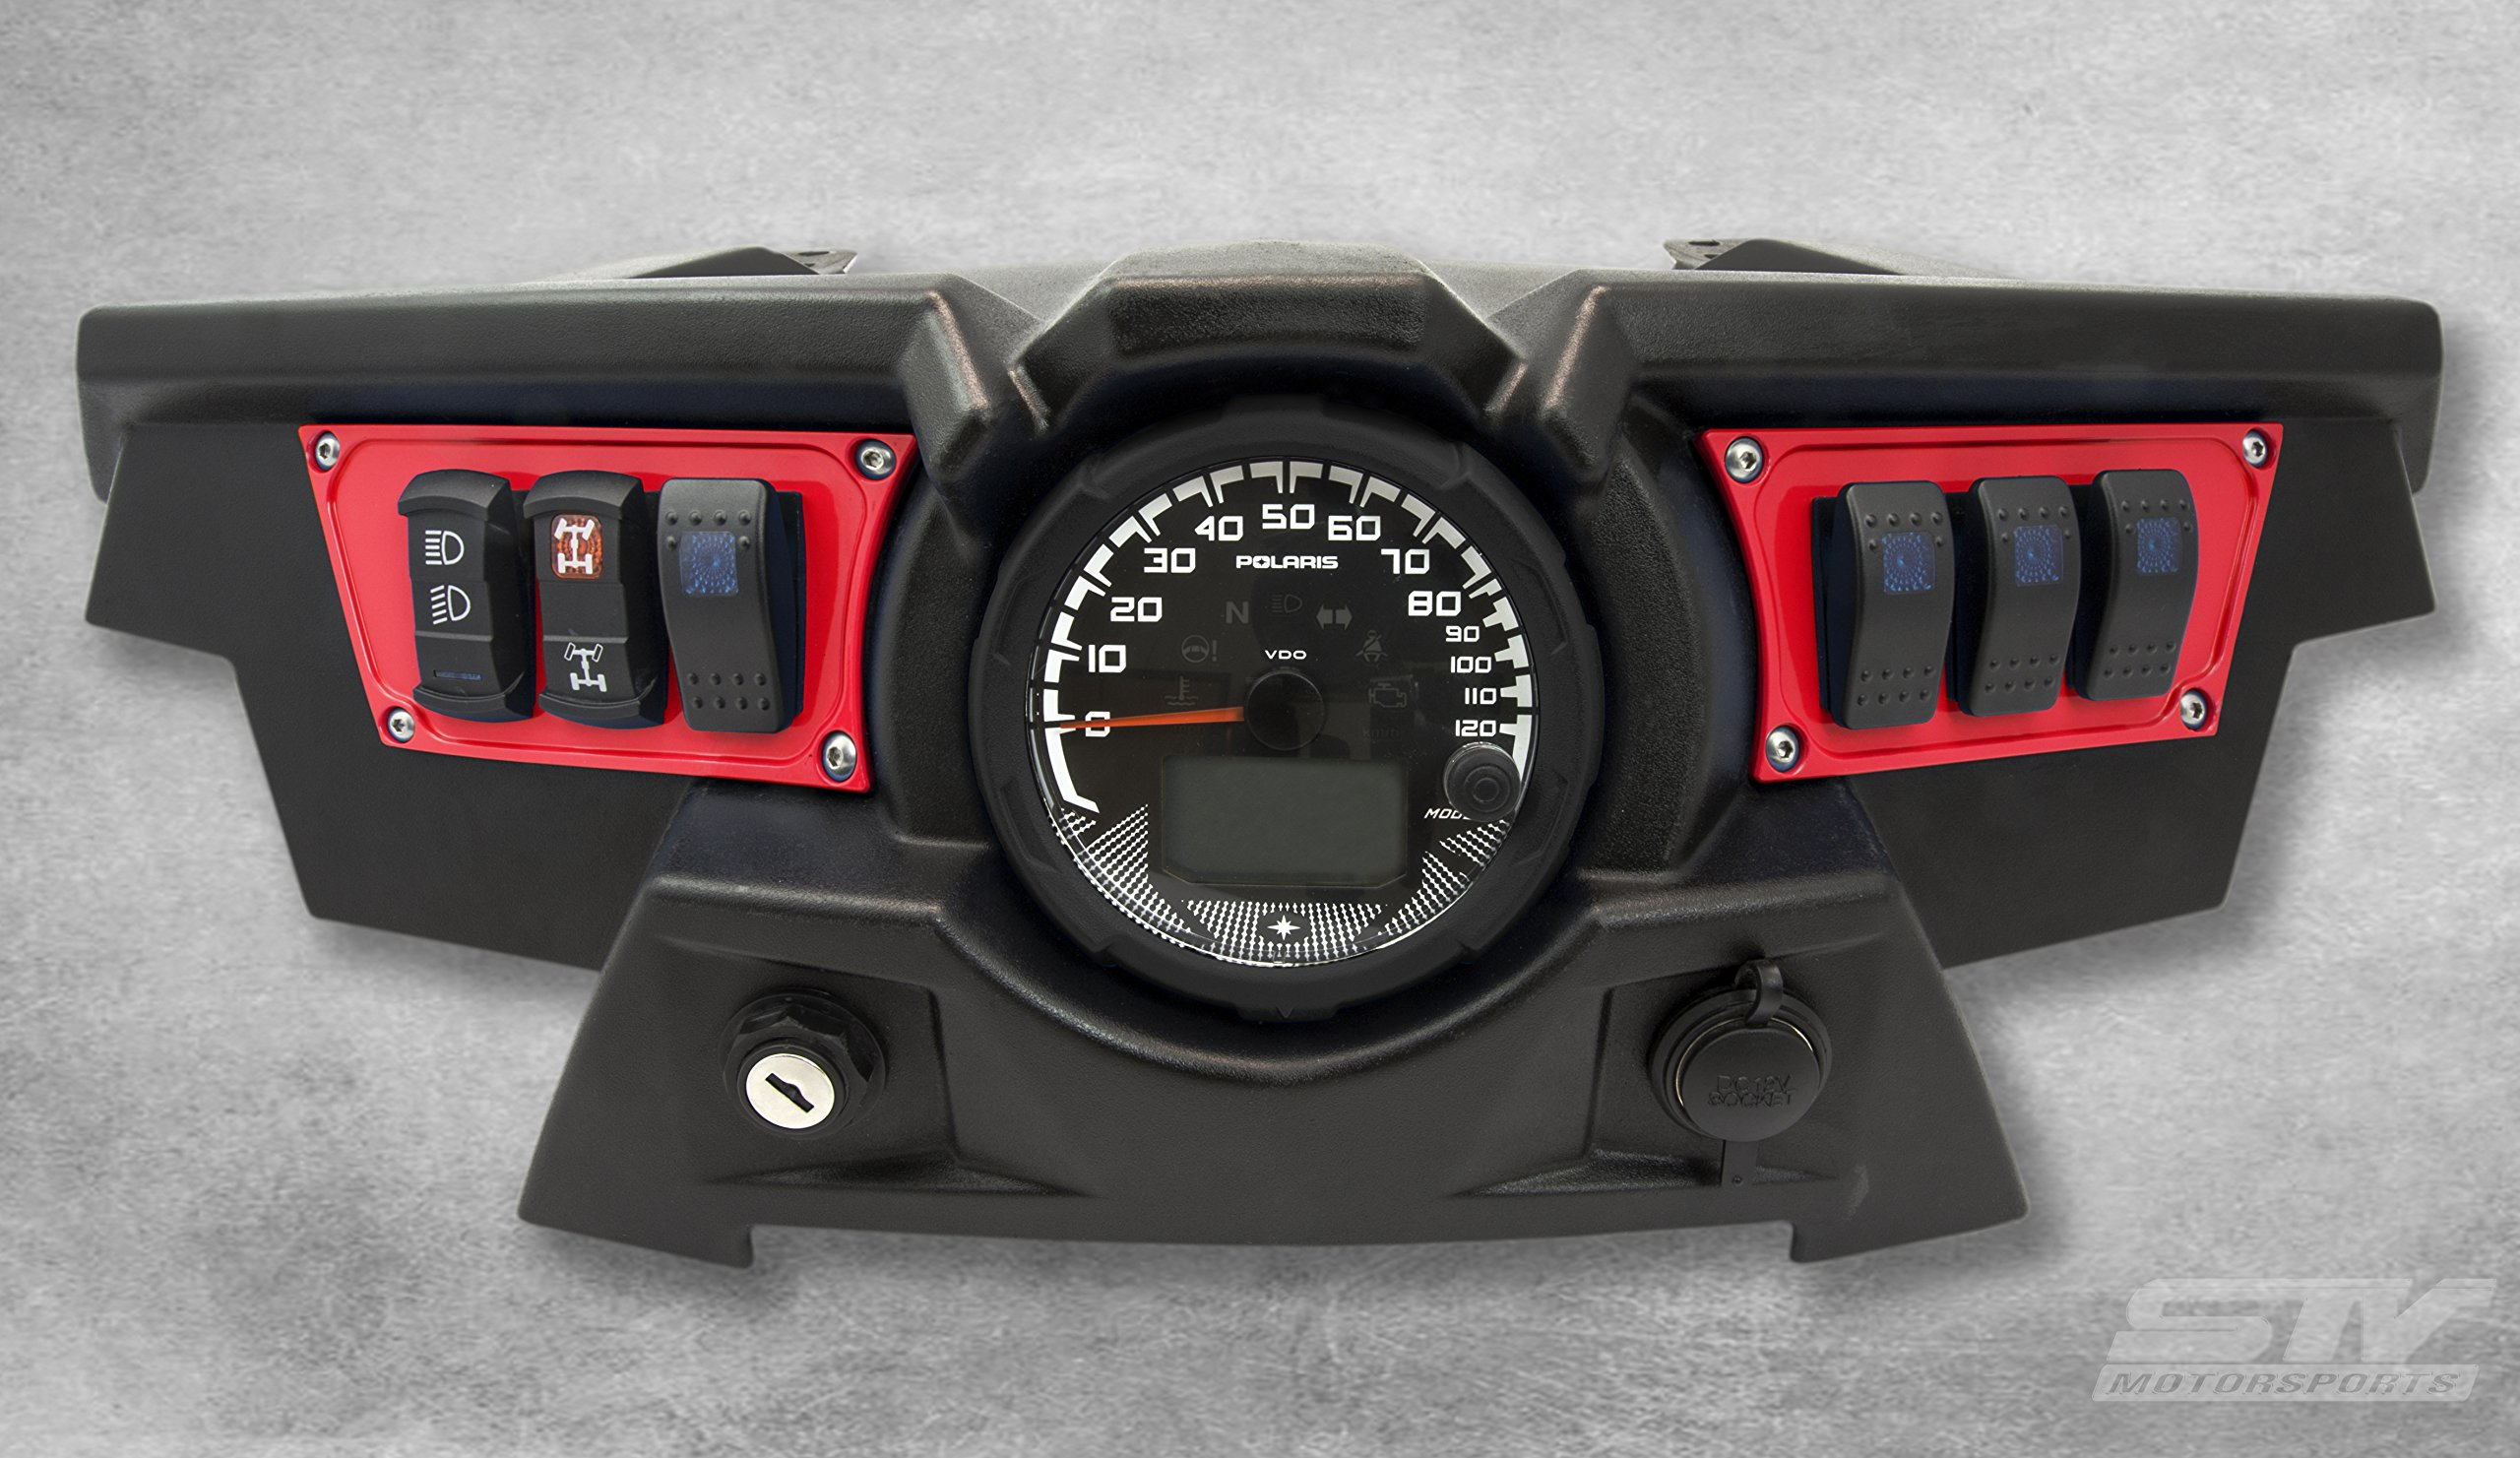 STVMotorsports Custom Aluminum Red Dash Panel for Polaris RZR XP 1000 with 4 Free Rocker Switches by STVMotorsports